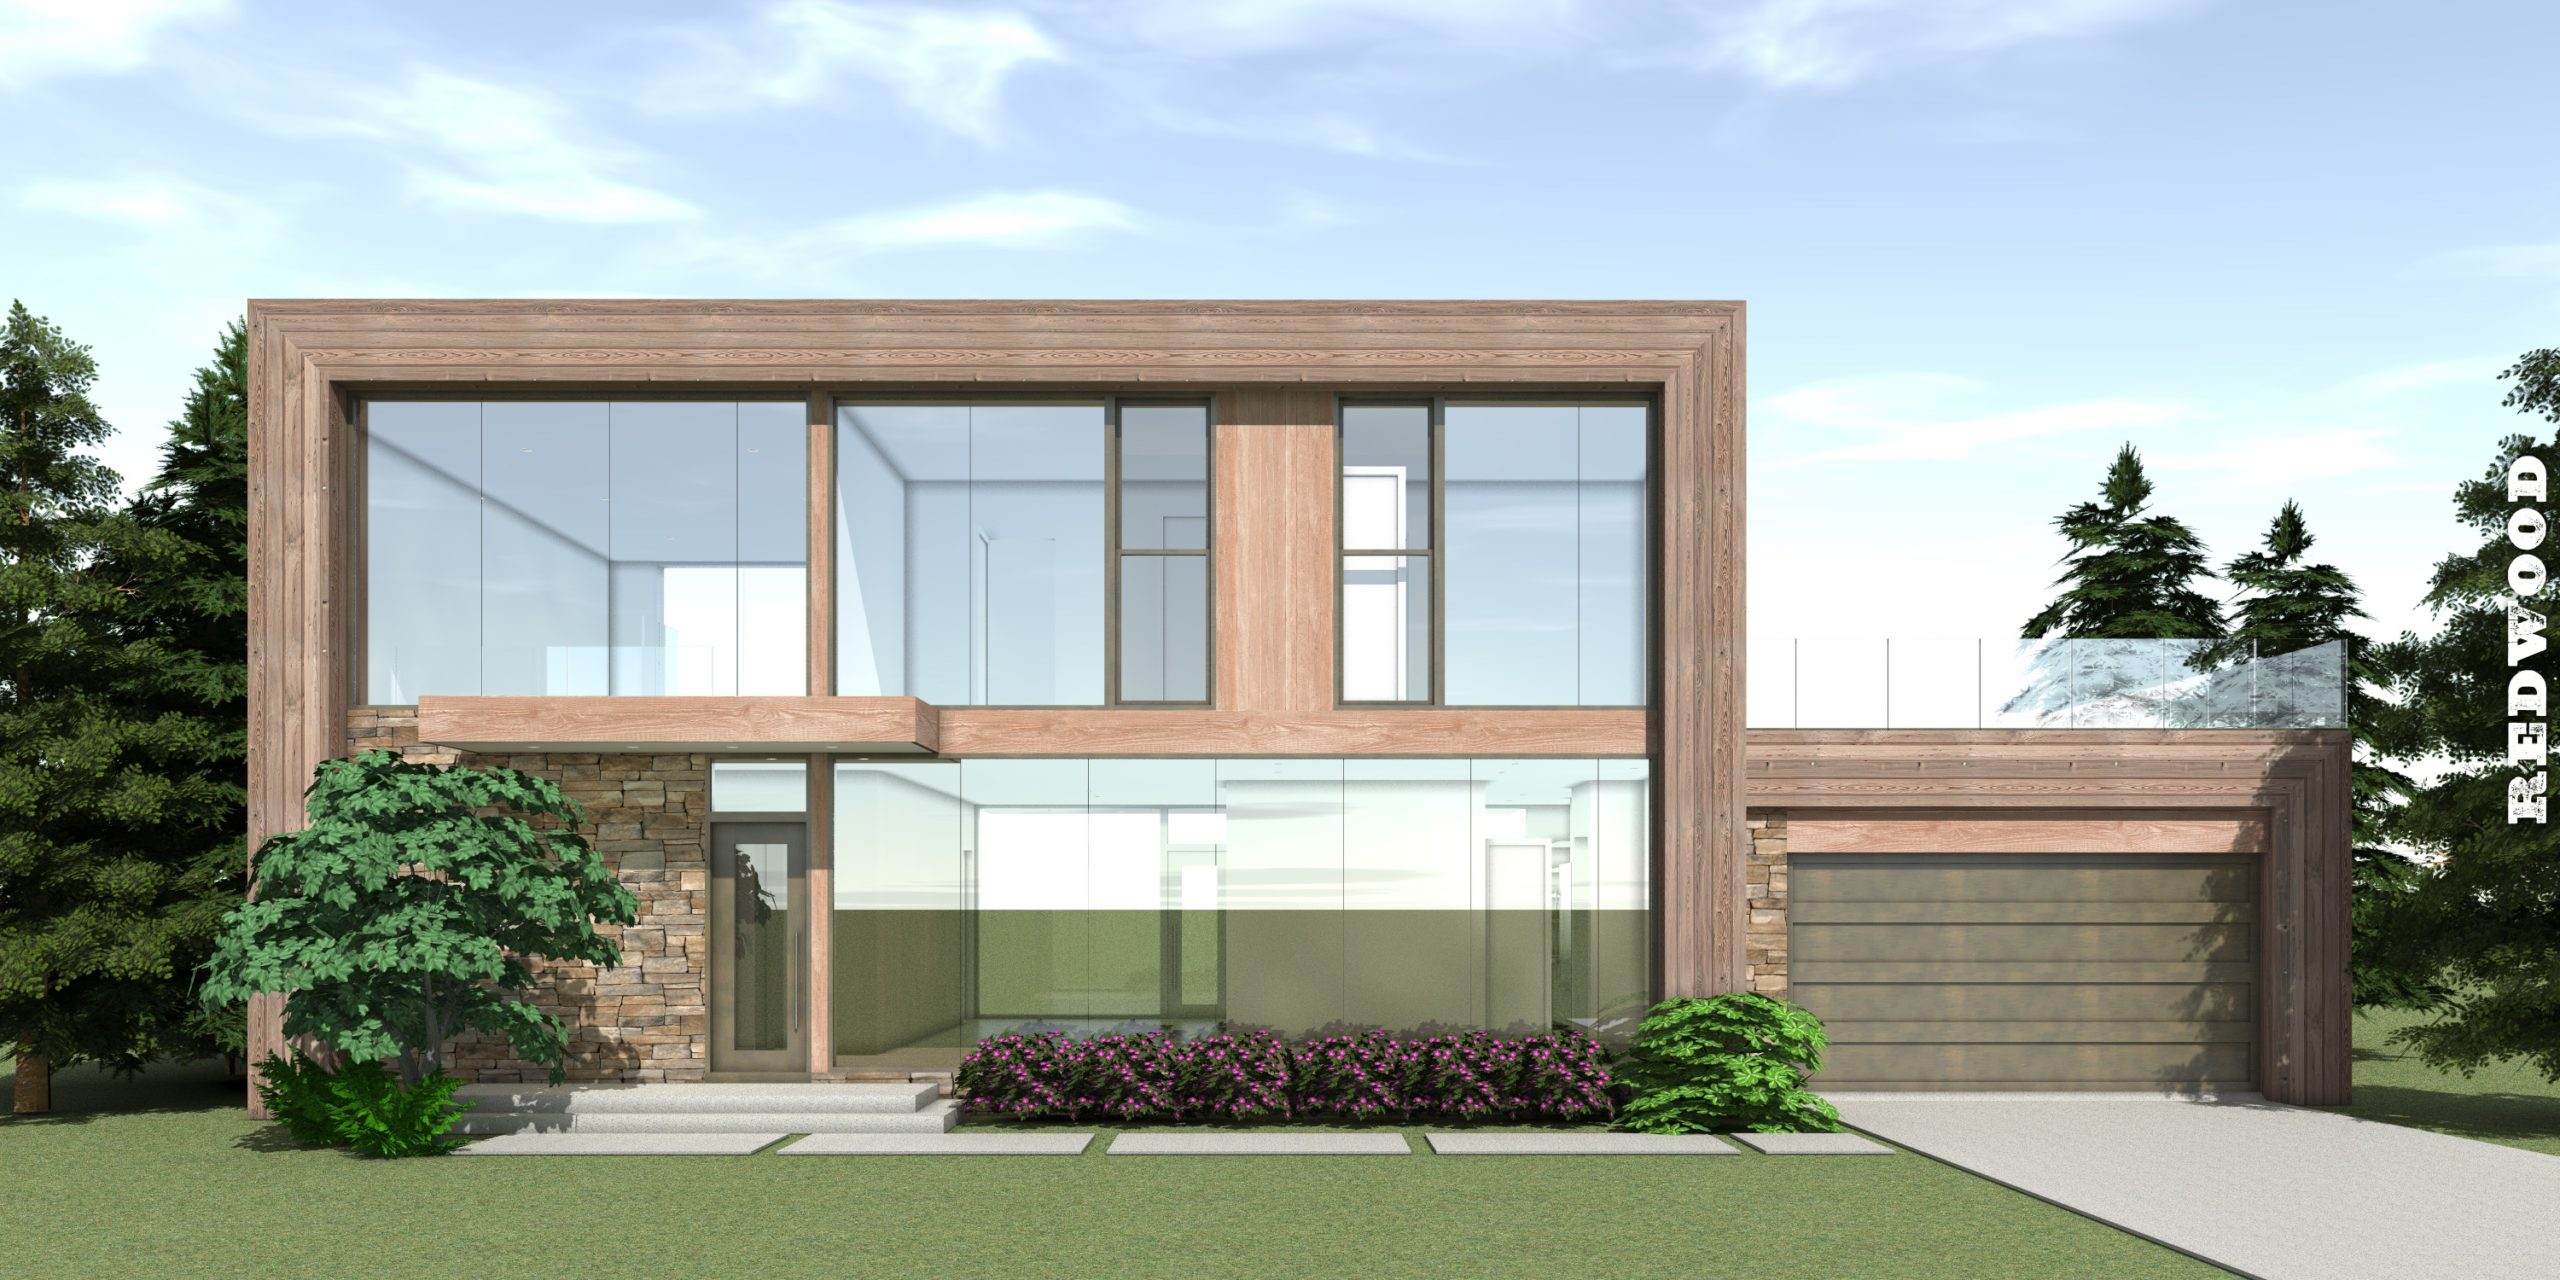 Warm Modern with 4 Bedrooms. Redwood by Tyree House Plans.